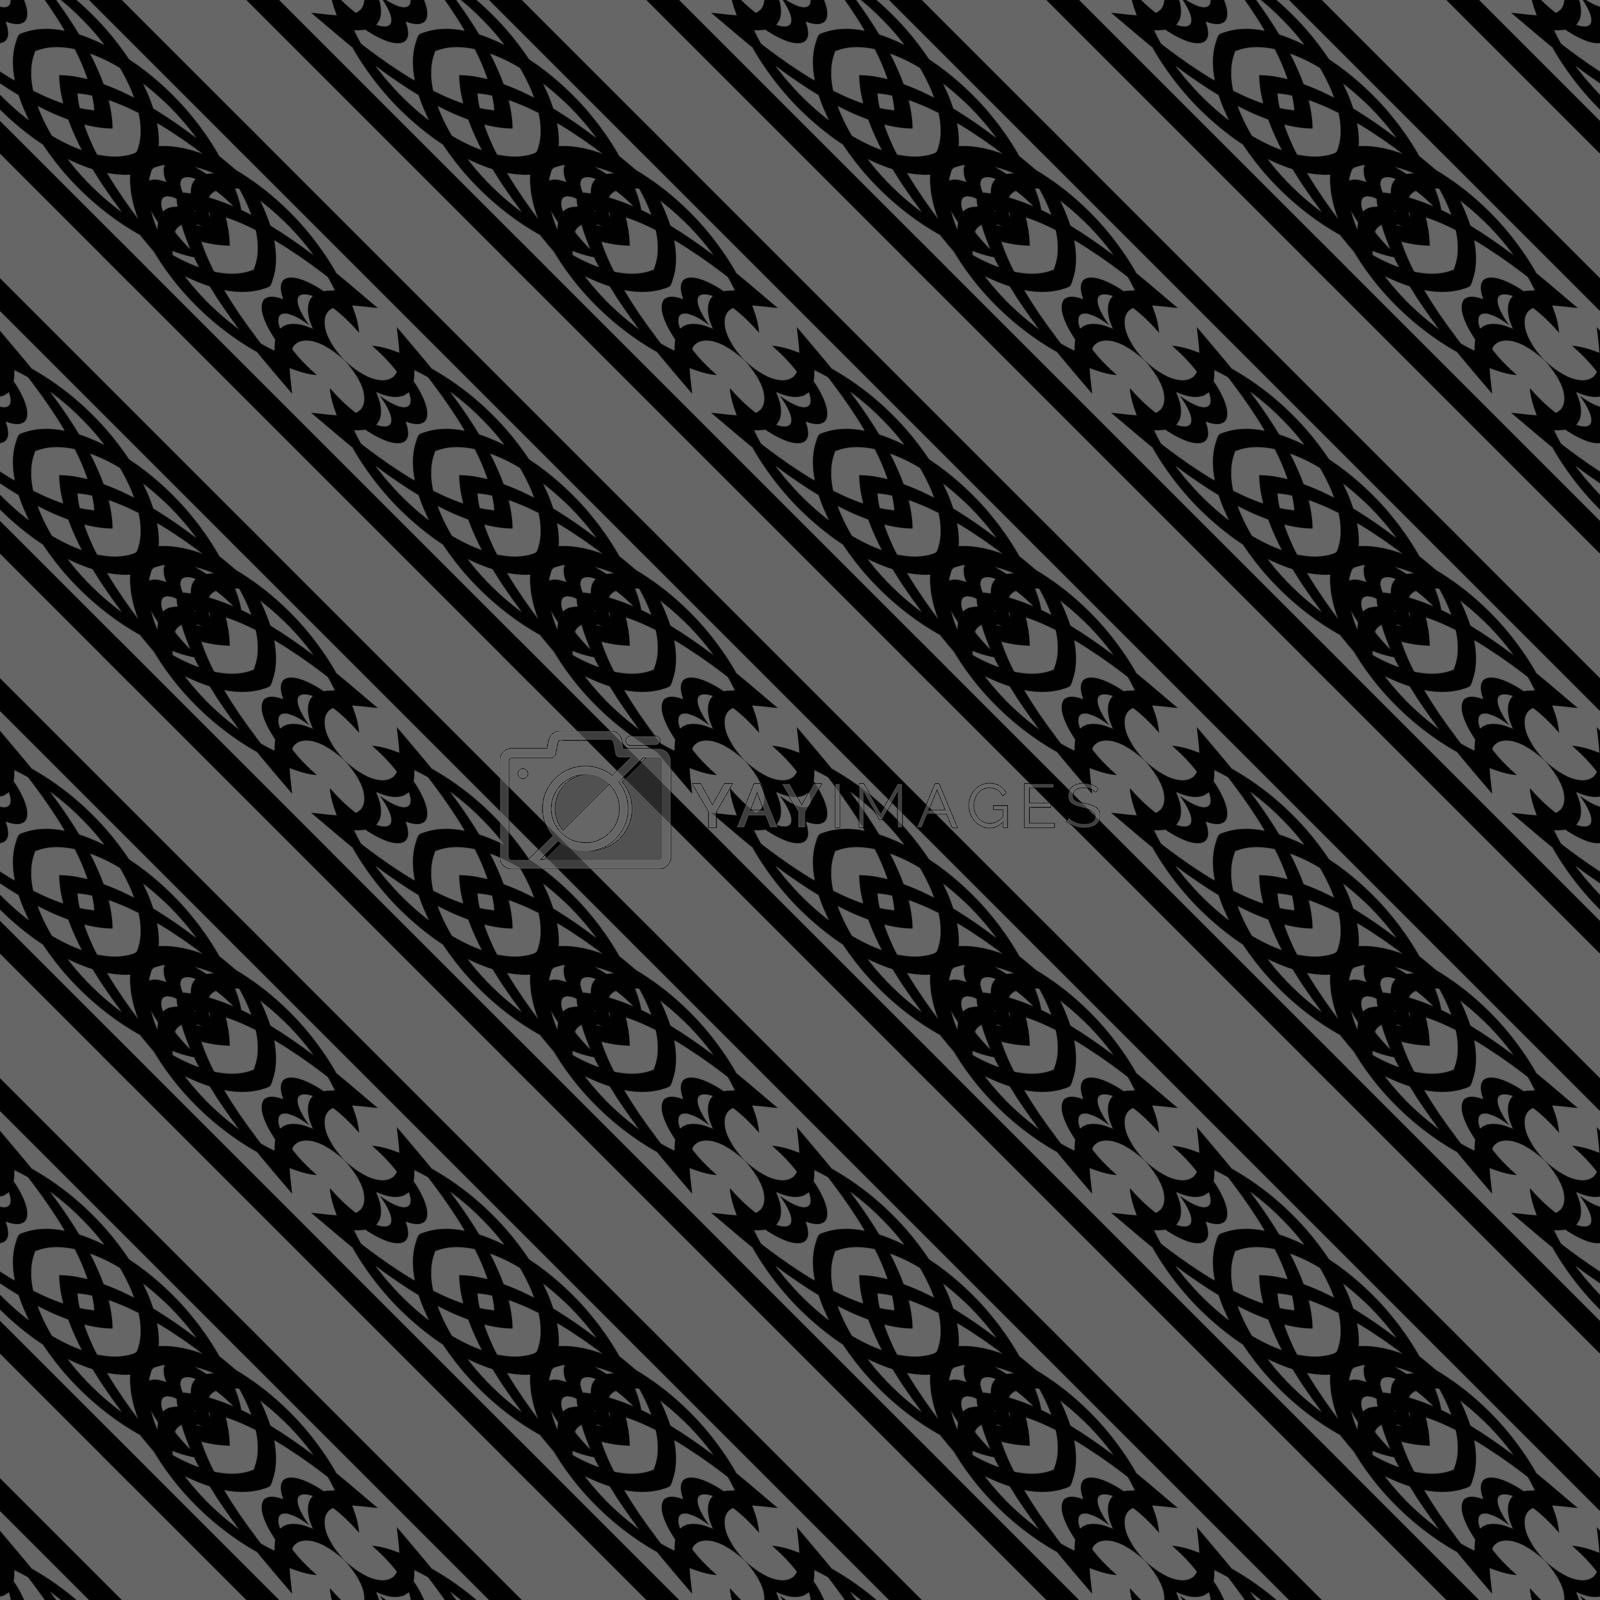 dark seamless background pattern in ancient gothic, viking or celtic style